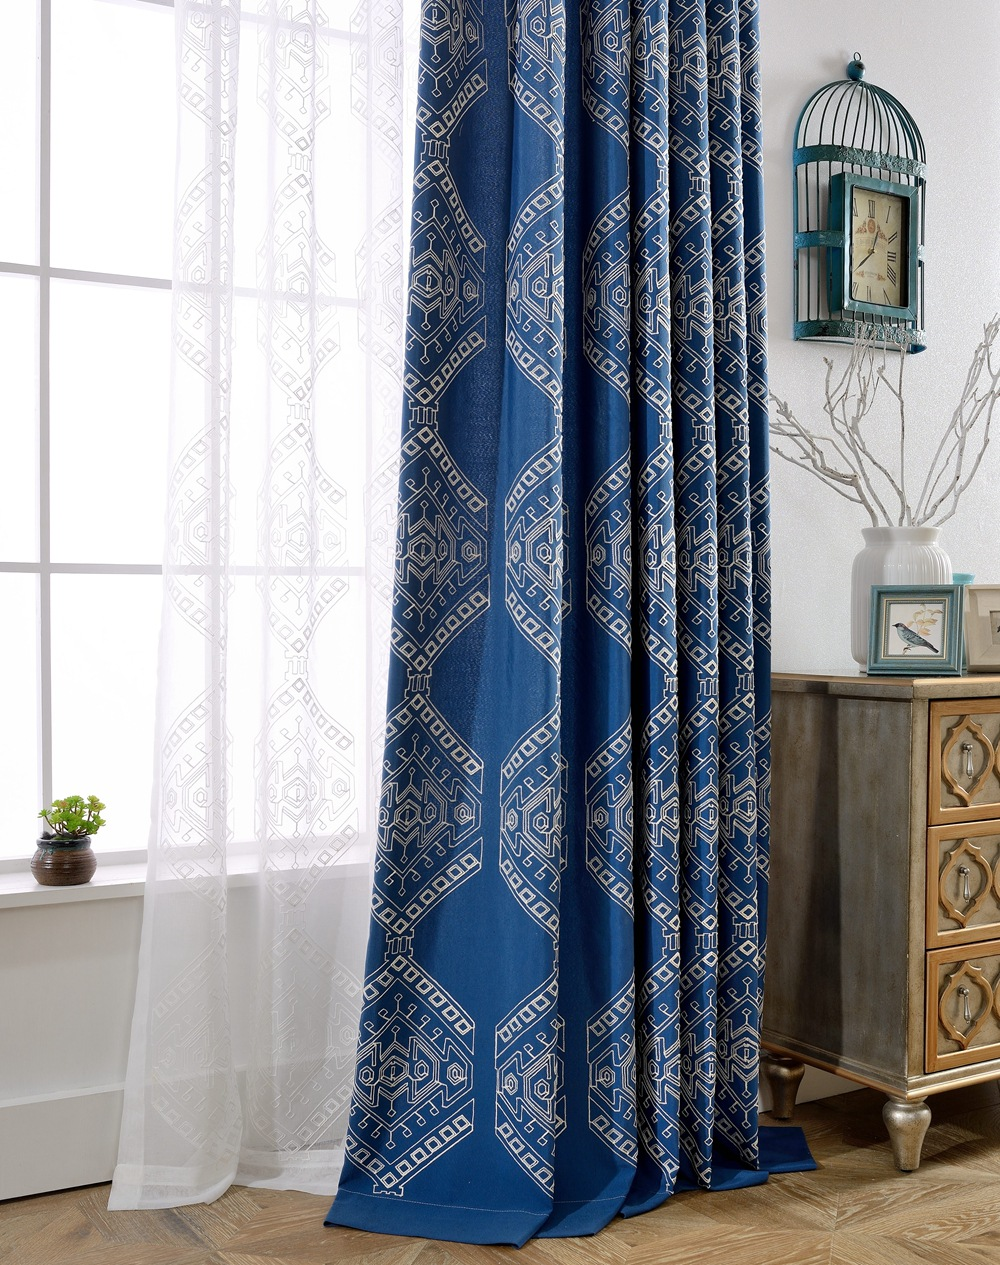 Buy map password embroidered curtains for living room blue green tulle curtain - Rideaux de salon ...